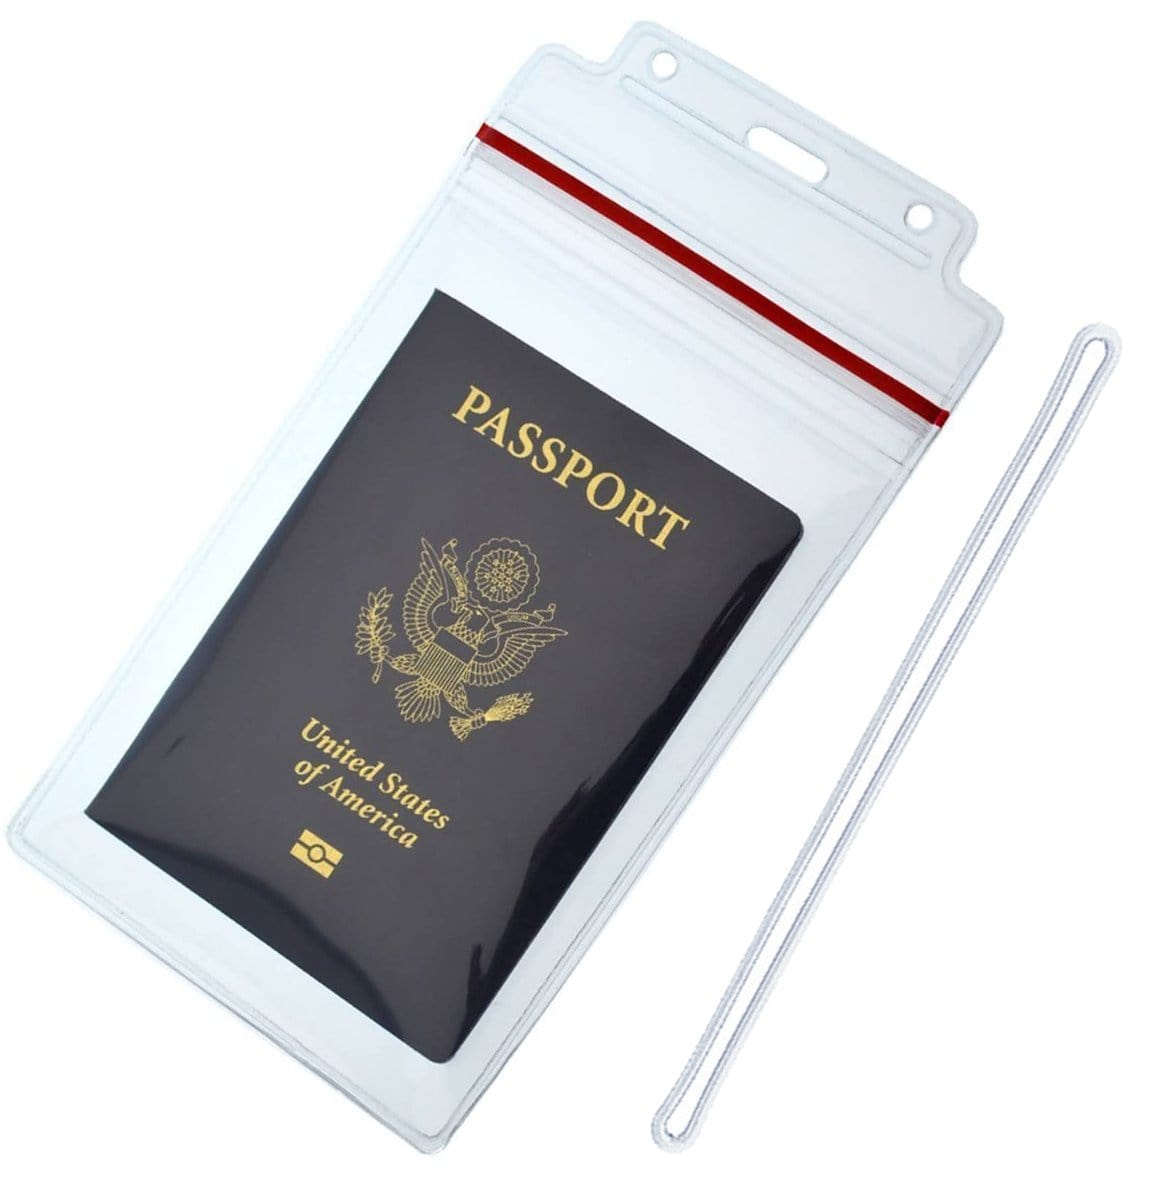 "Extra Large Luggage Tags - Clear 4x6 Heavy Duty Cruise Ship ID Tag / Golf Bag Travel Document Holder with 9"" Plastic Loop"